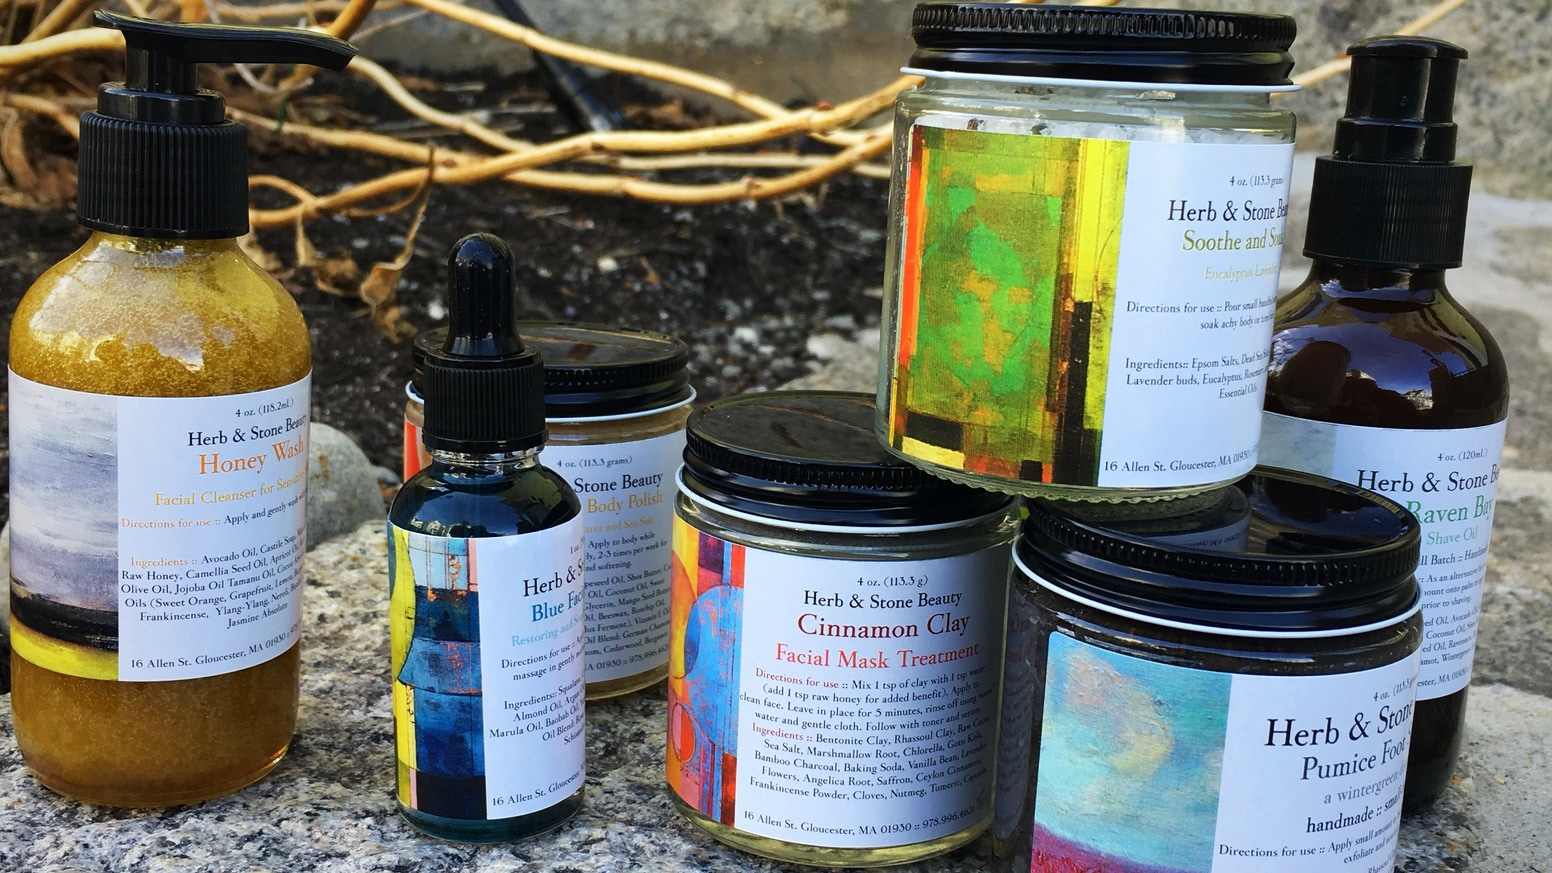 Herb & Stone Beauty: Artful, handmade natural cosmetics by Kathleen